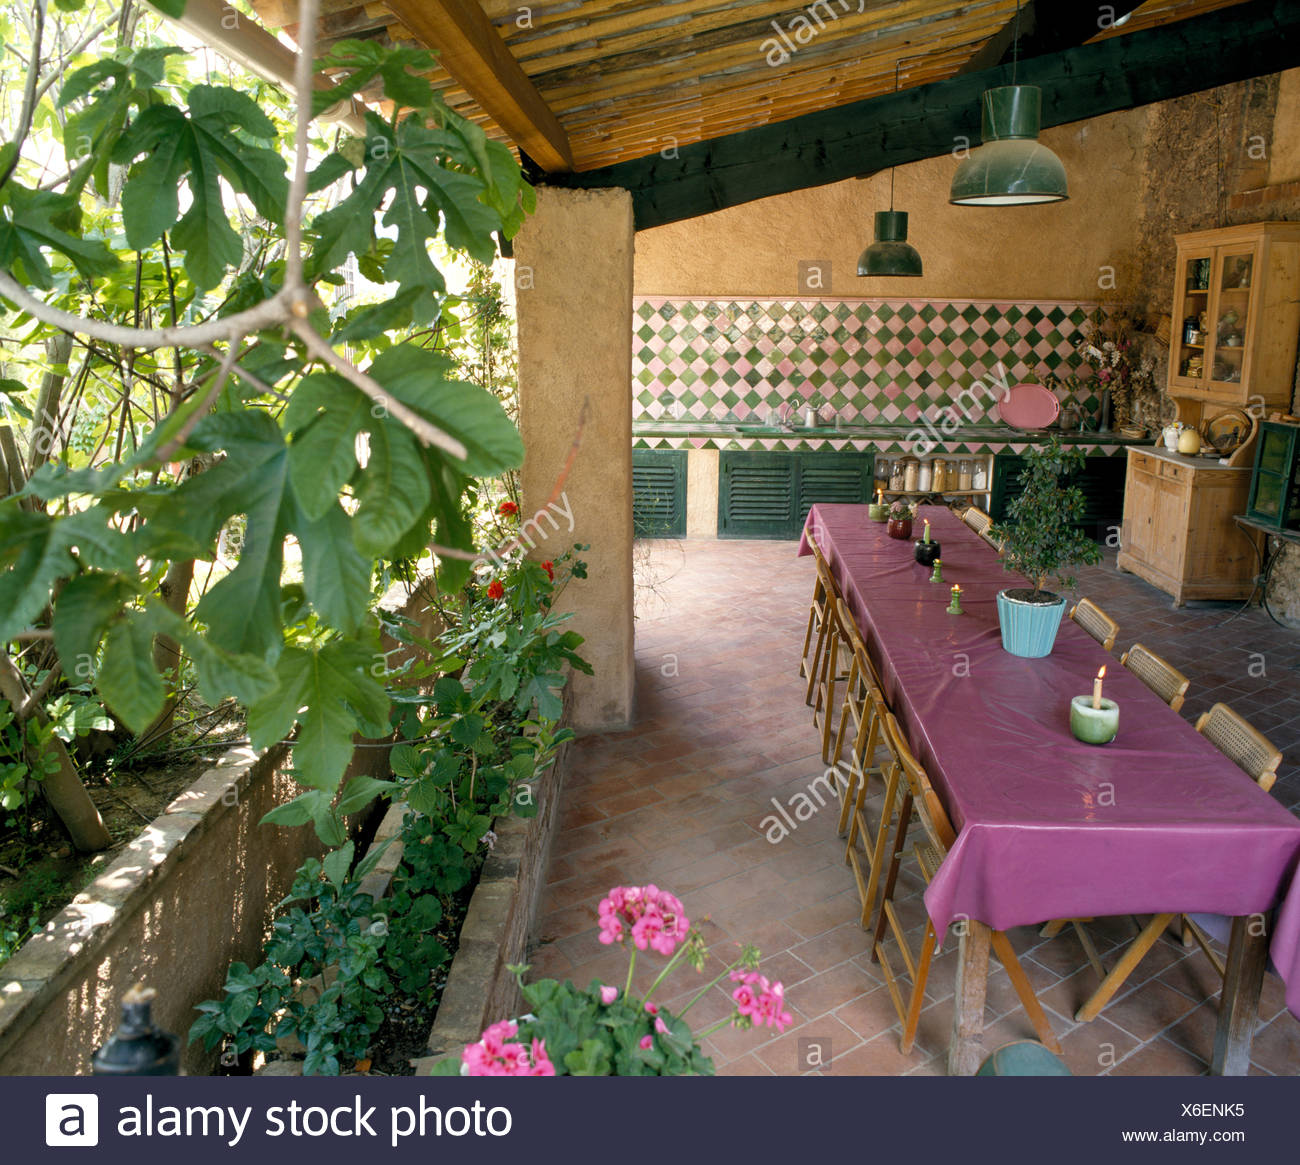 Purple Pvc Cloth On Table On Veranda Of French Country House With Pink Green Tiling In Outdoor Kitchen Stock Photo Alamy